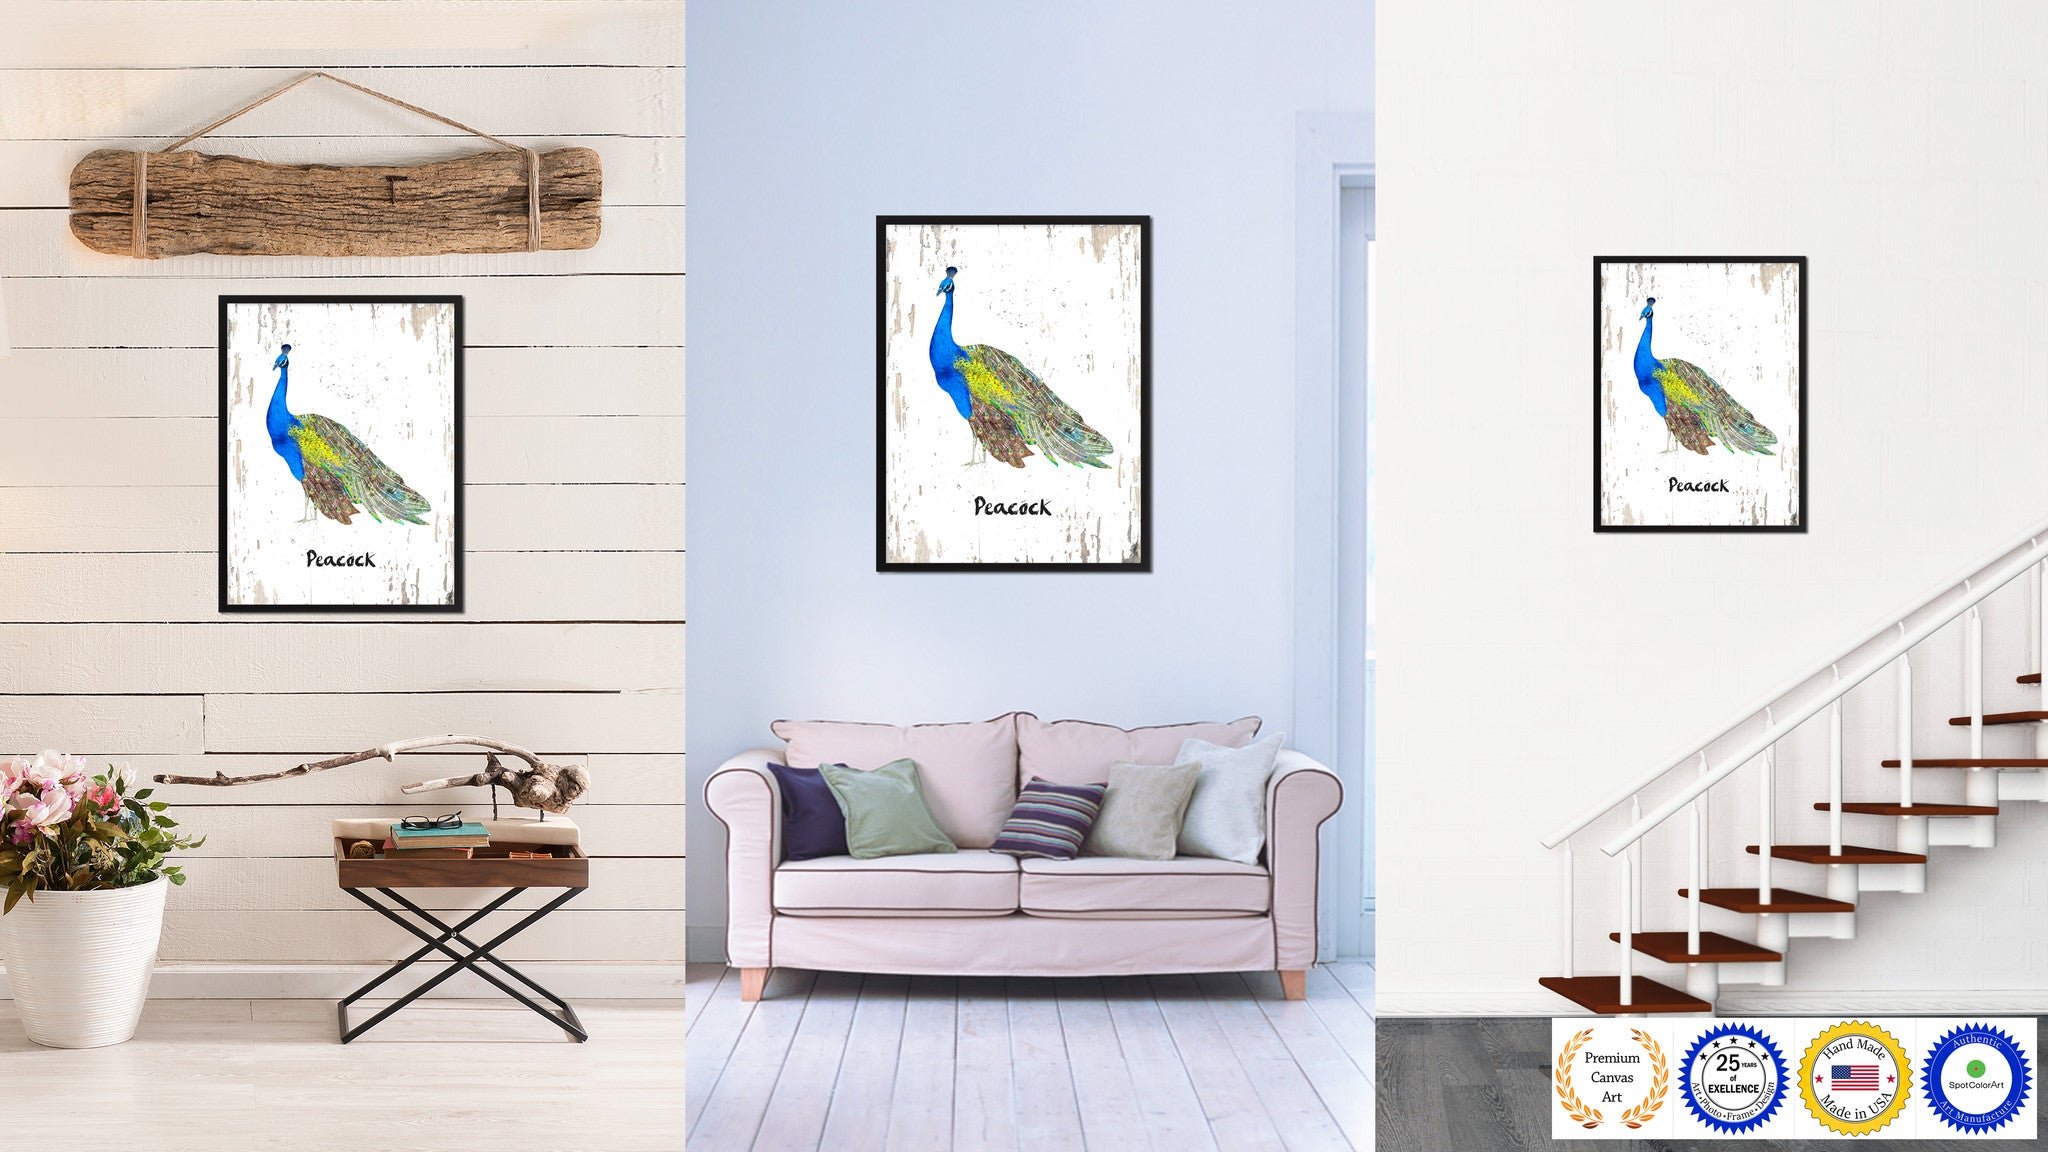 Peacock Bird Canvas Print, Black Picture Frame Gift Ideas Home Decor Wall  Art Decoration